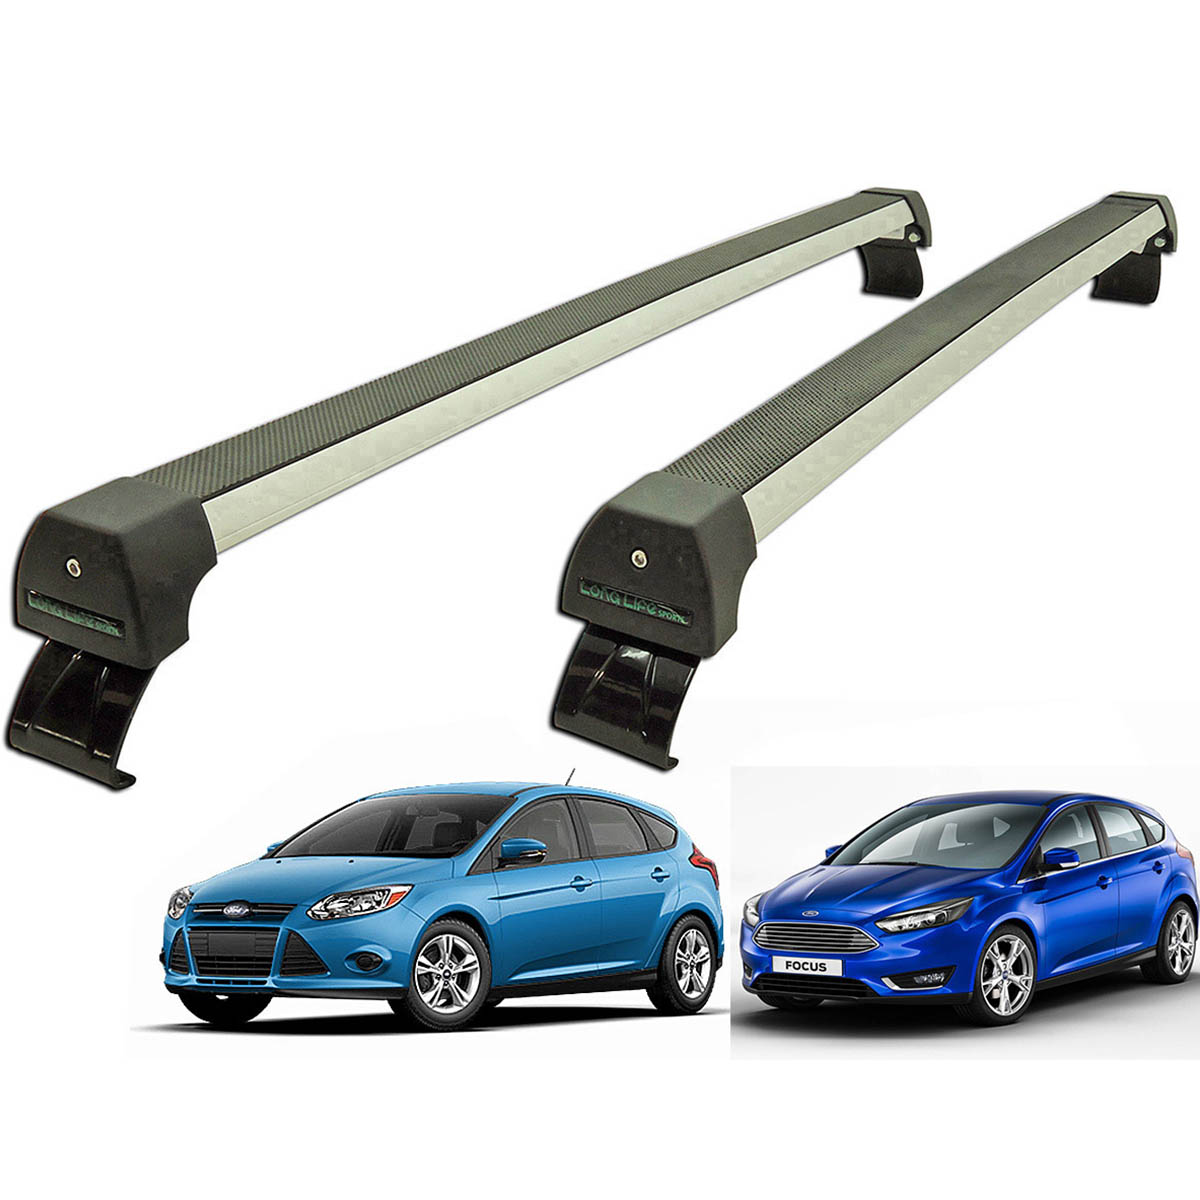 Rack de teto Focus 2014 a 2017 Long Life Sports anodizado